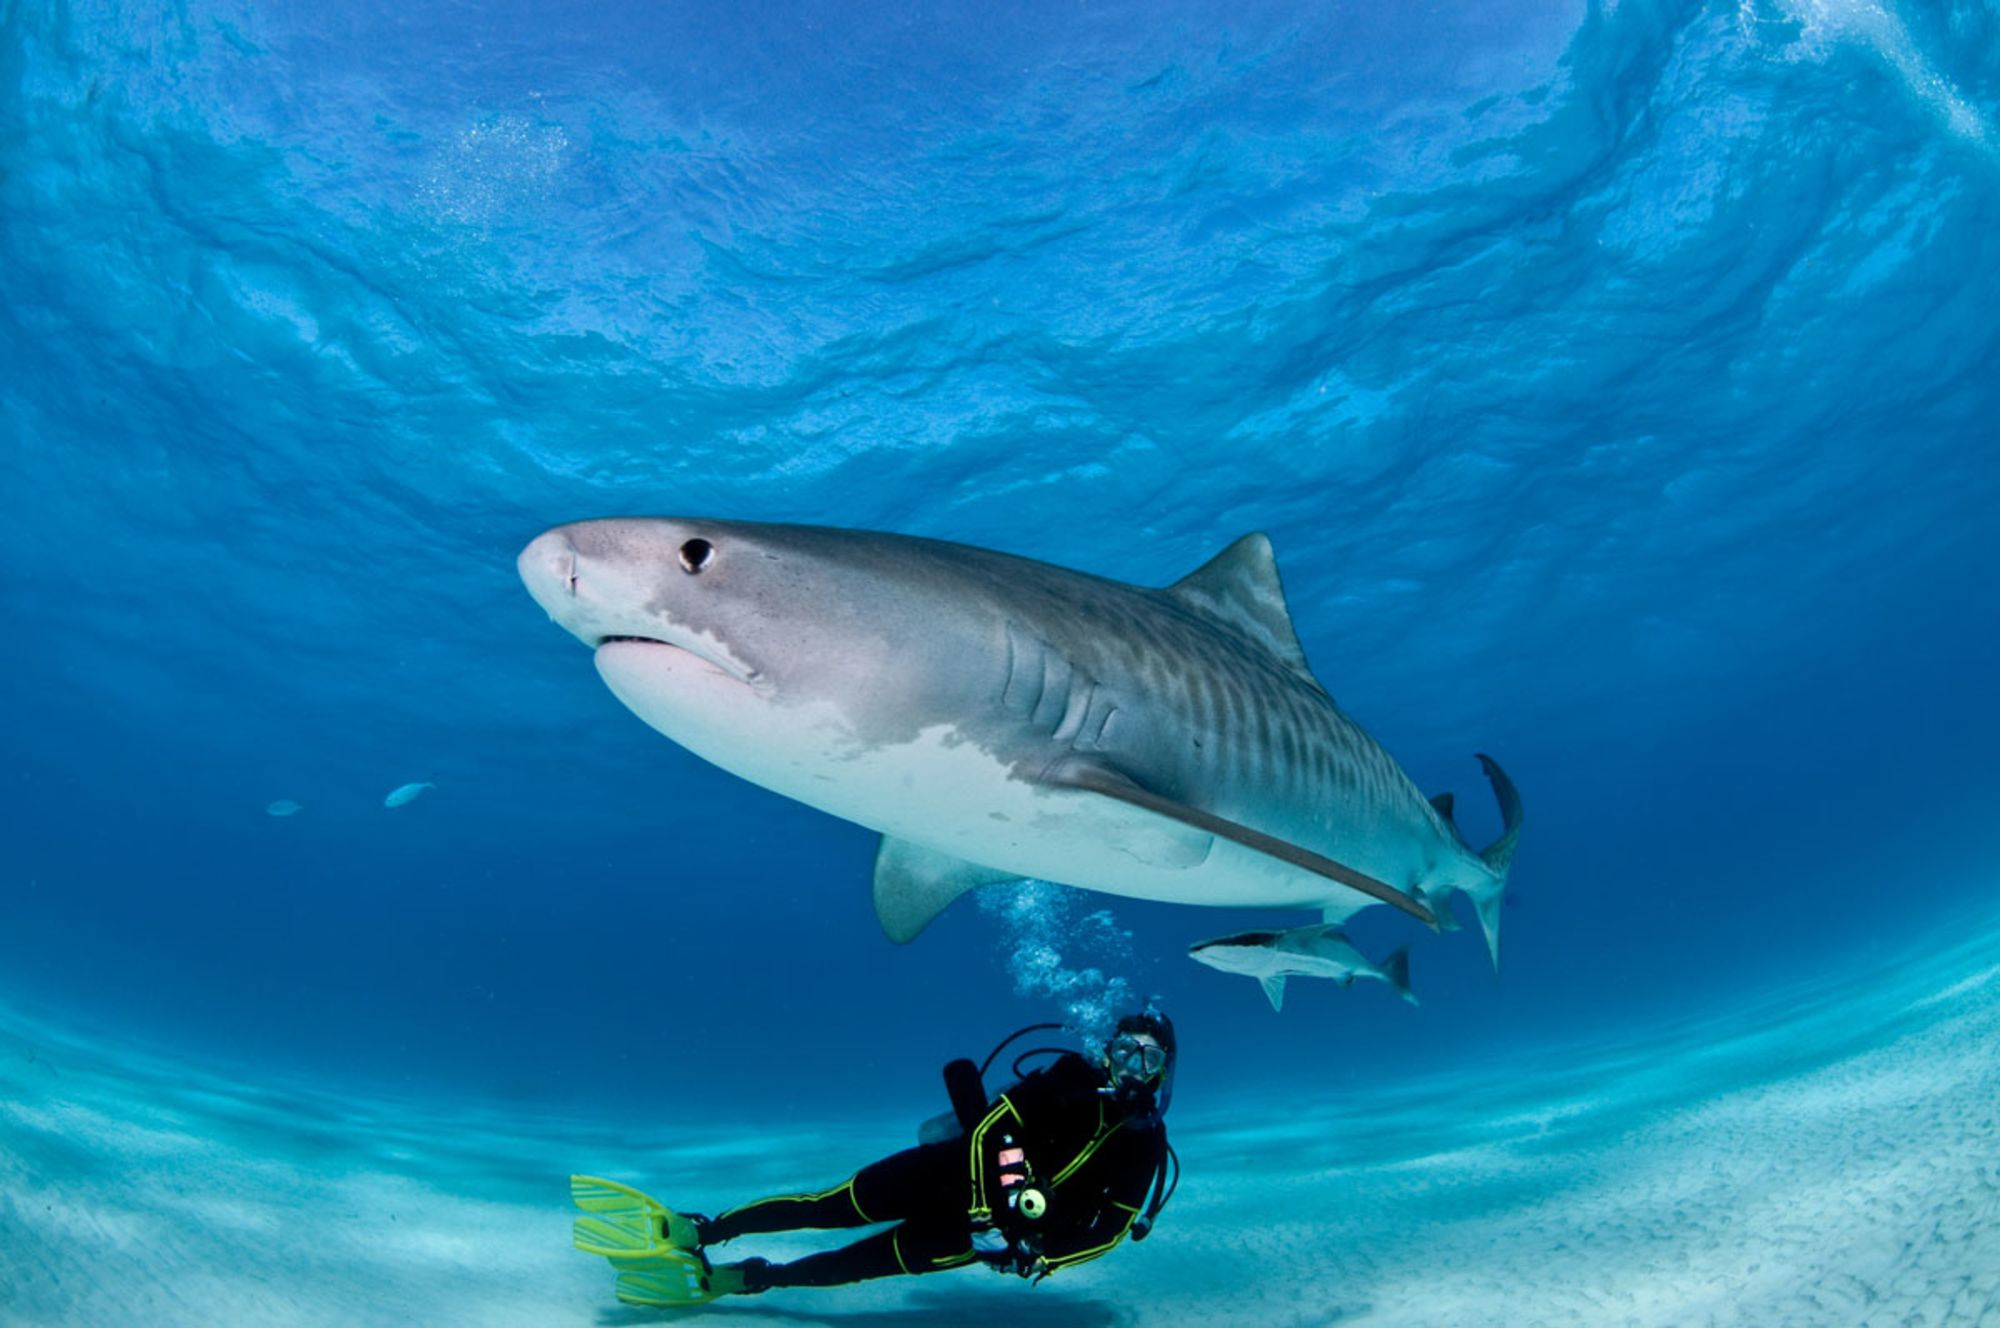 How Should You Deal with an Aggressive Shark When Scuba Diving?